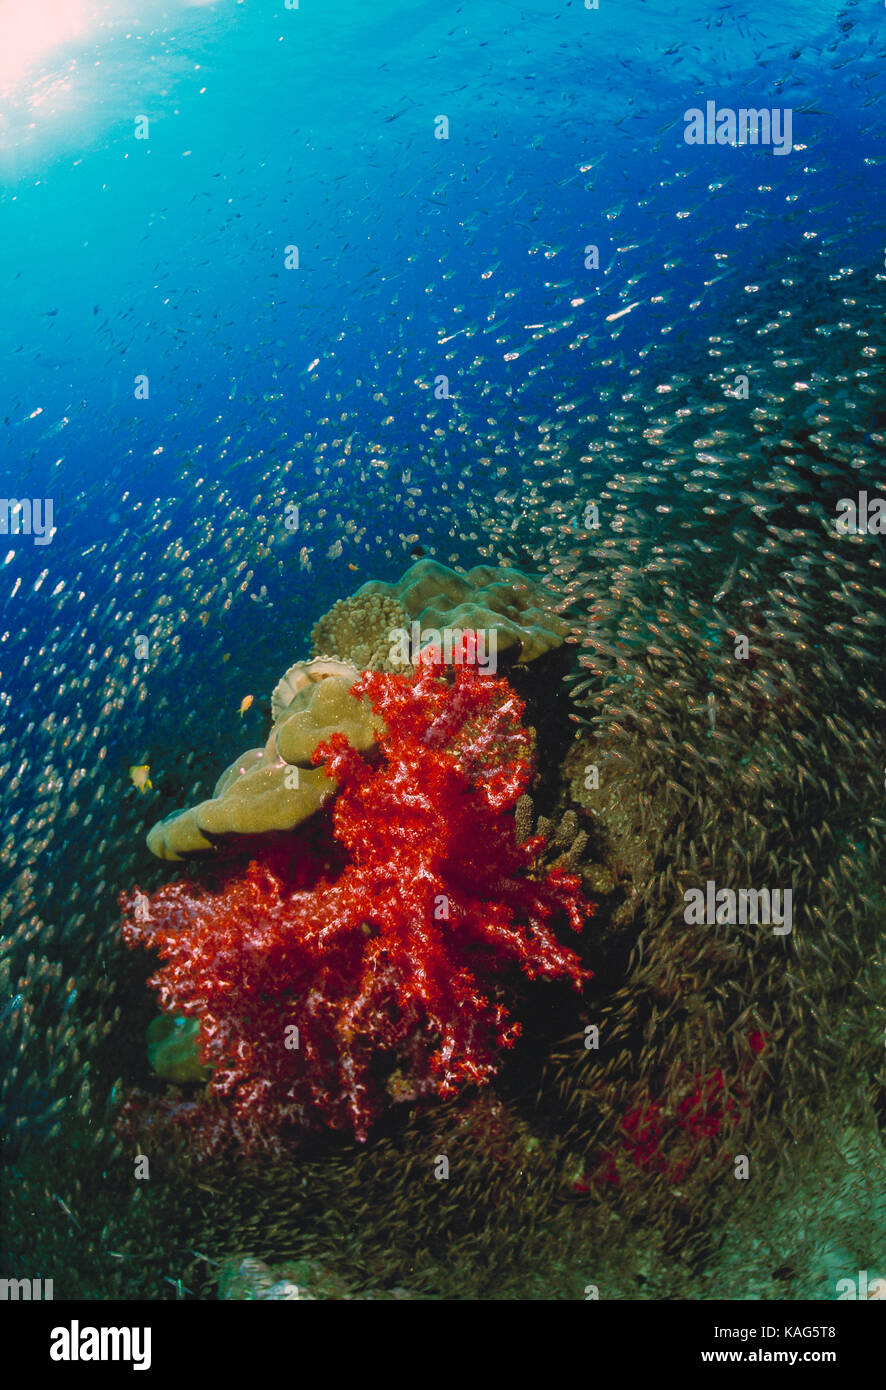 Thailand. Similan Islands. Underwater view of small fishes encircling soft corals. - Stock Image